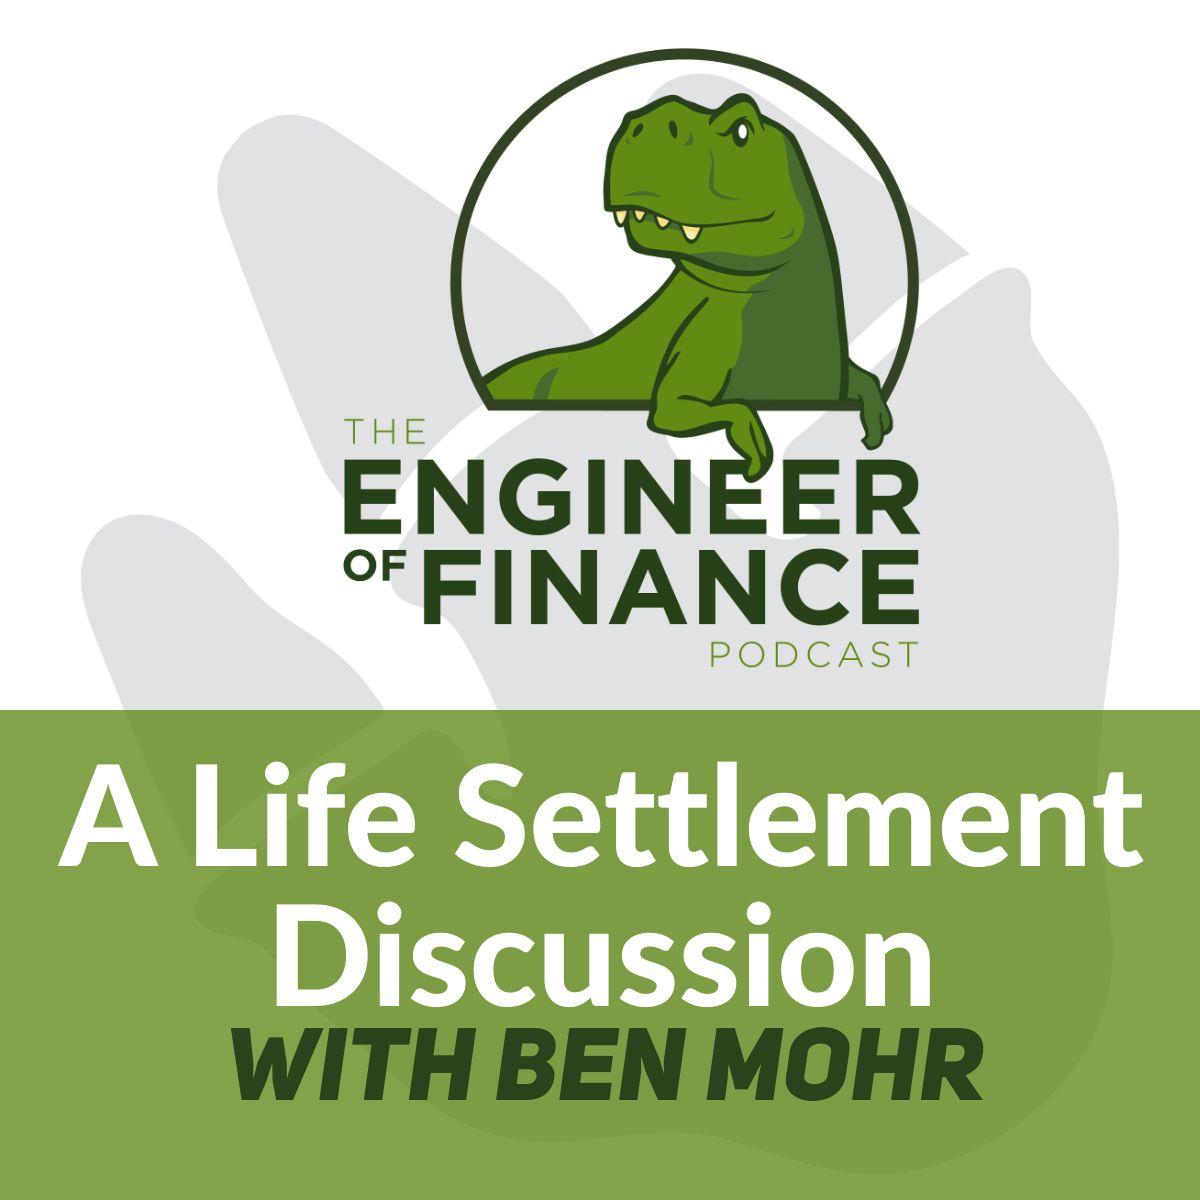 A Life Settlement Discussion with Ben Mohr – Episode 118